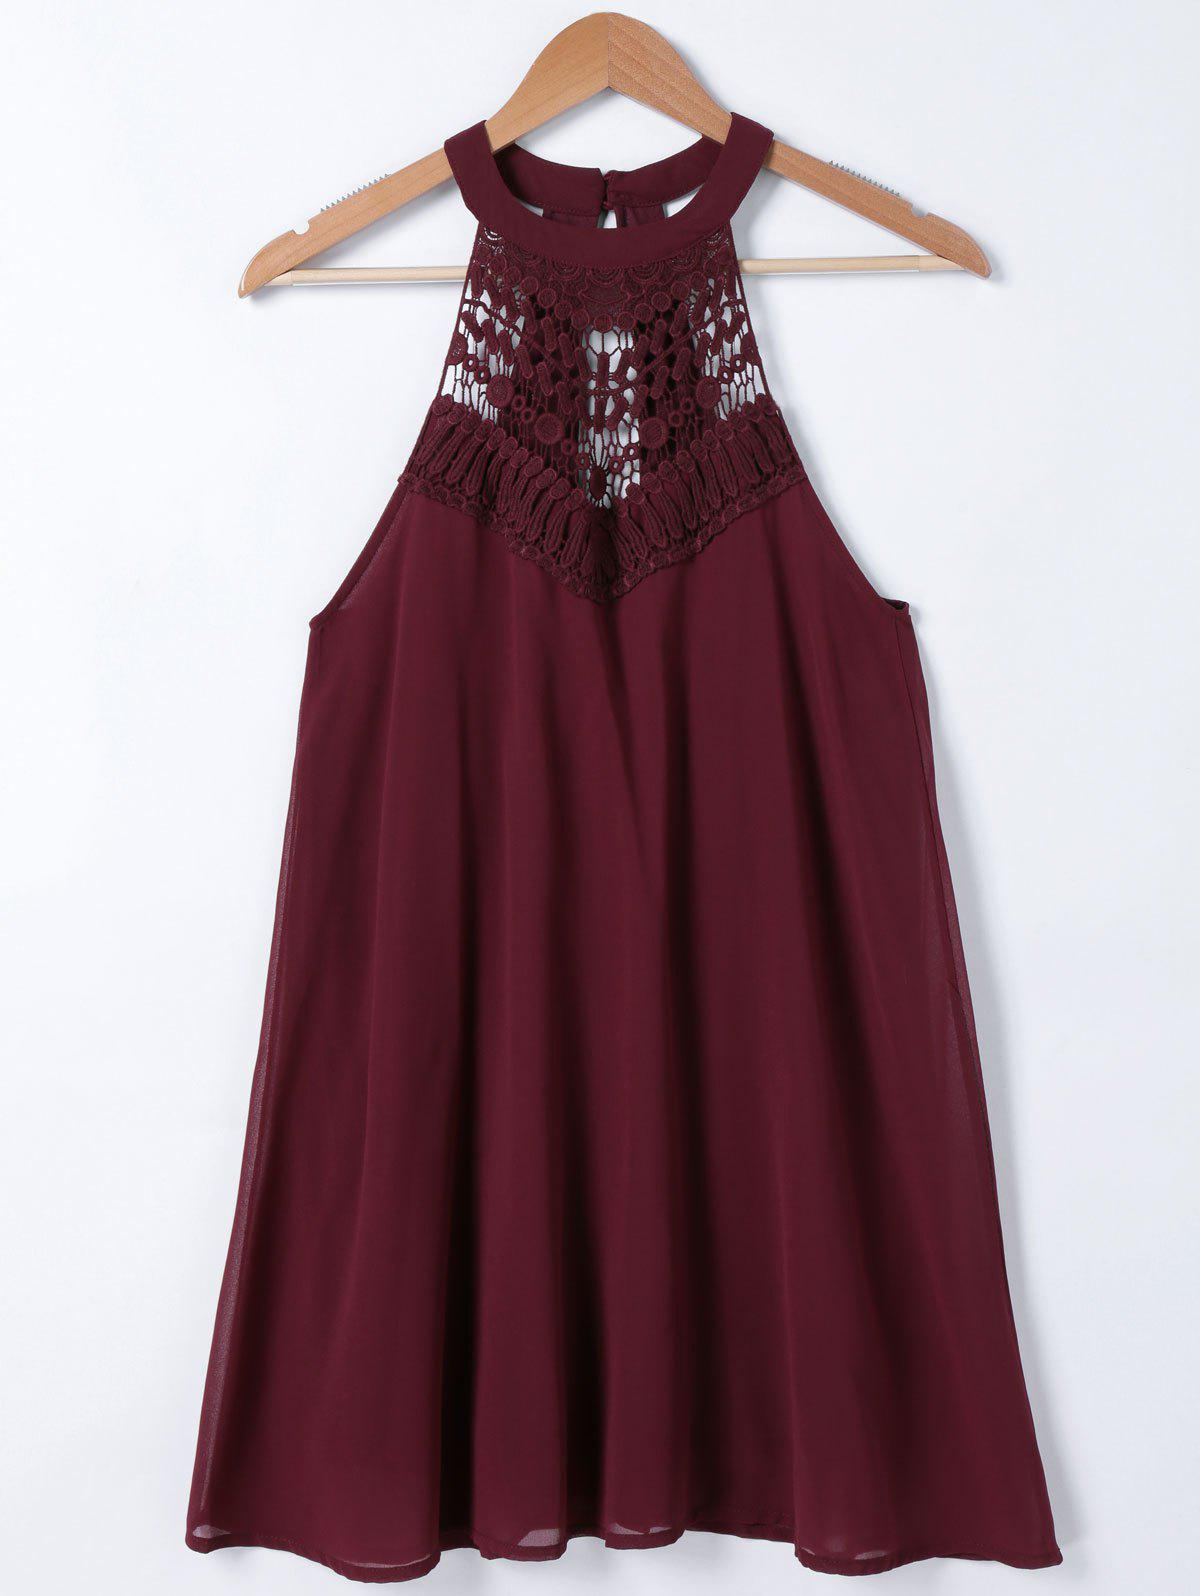 Lace Splicing Round Neck Sleeveless Dress - DARK RED ONE SIZE